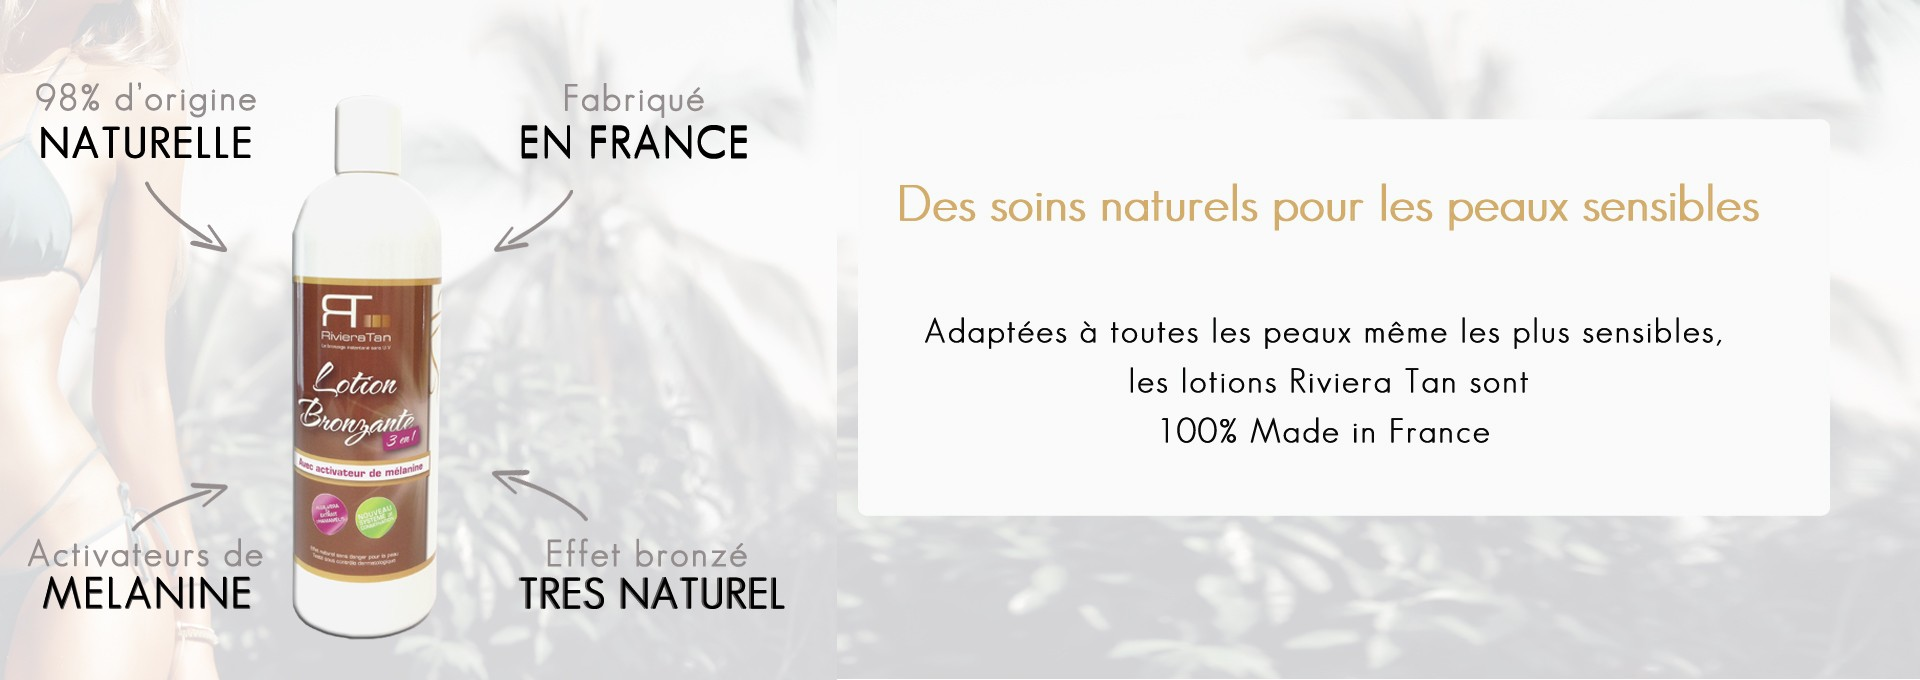 Lotion bronzante naturelle